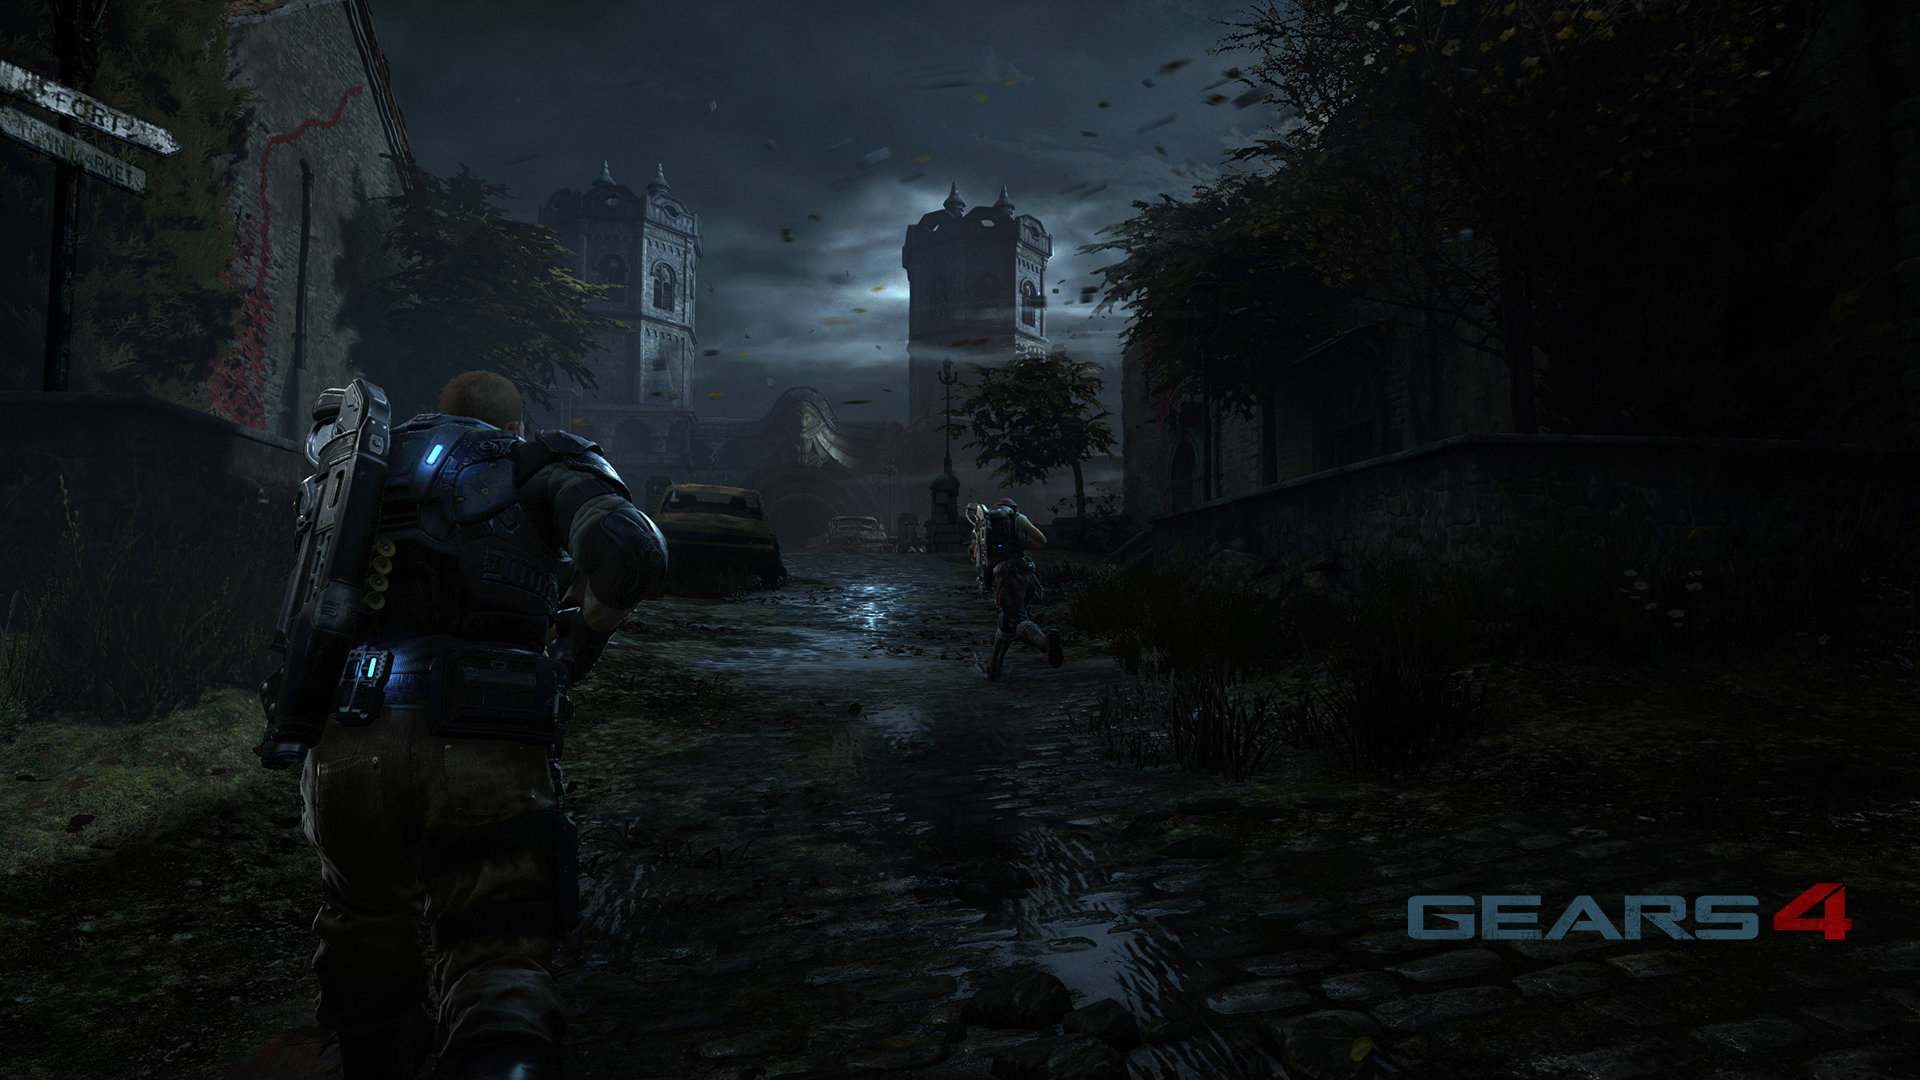 Free Gears Of War 4 High Quality Wallpaper Id 178170 For Hd